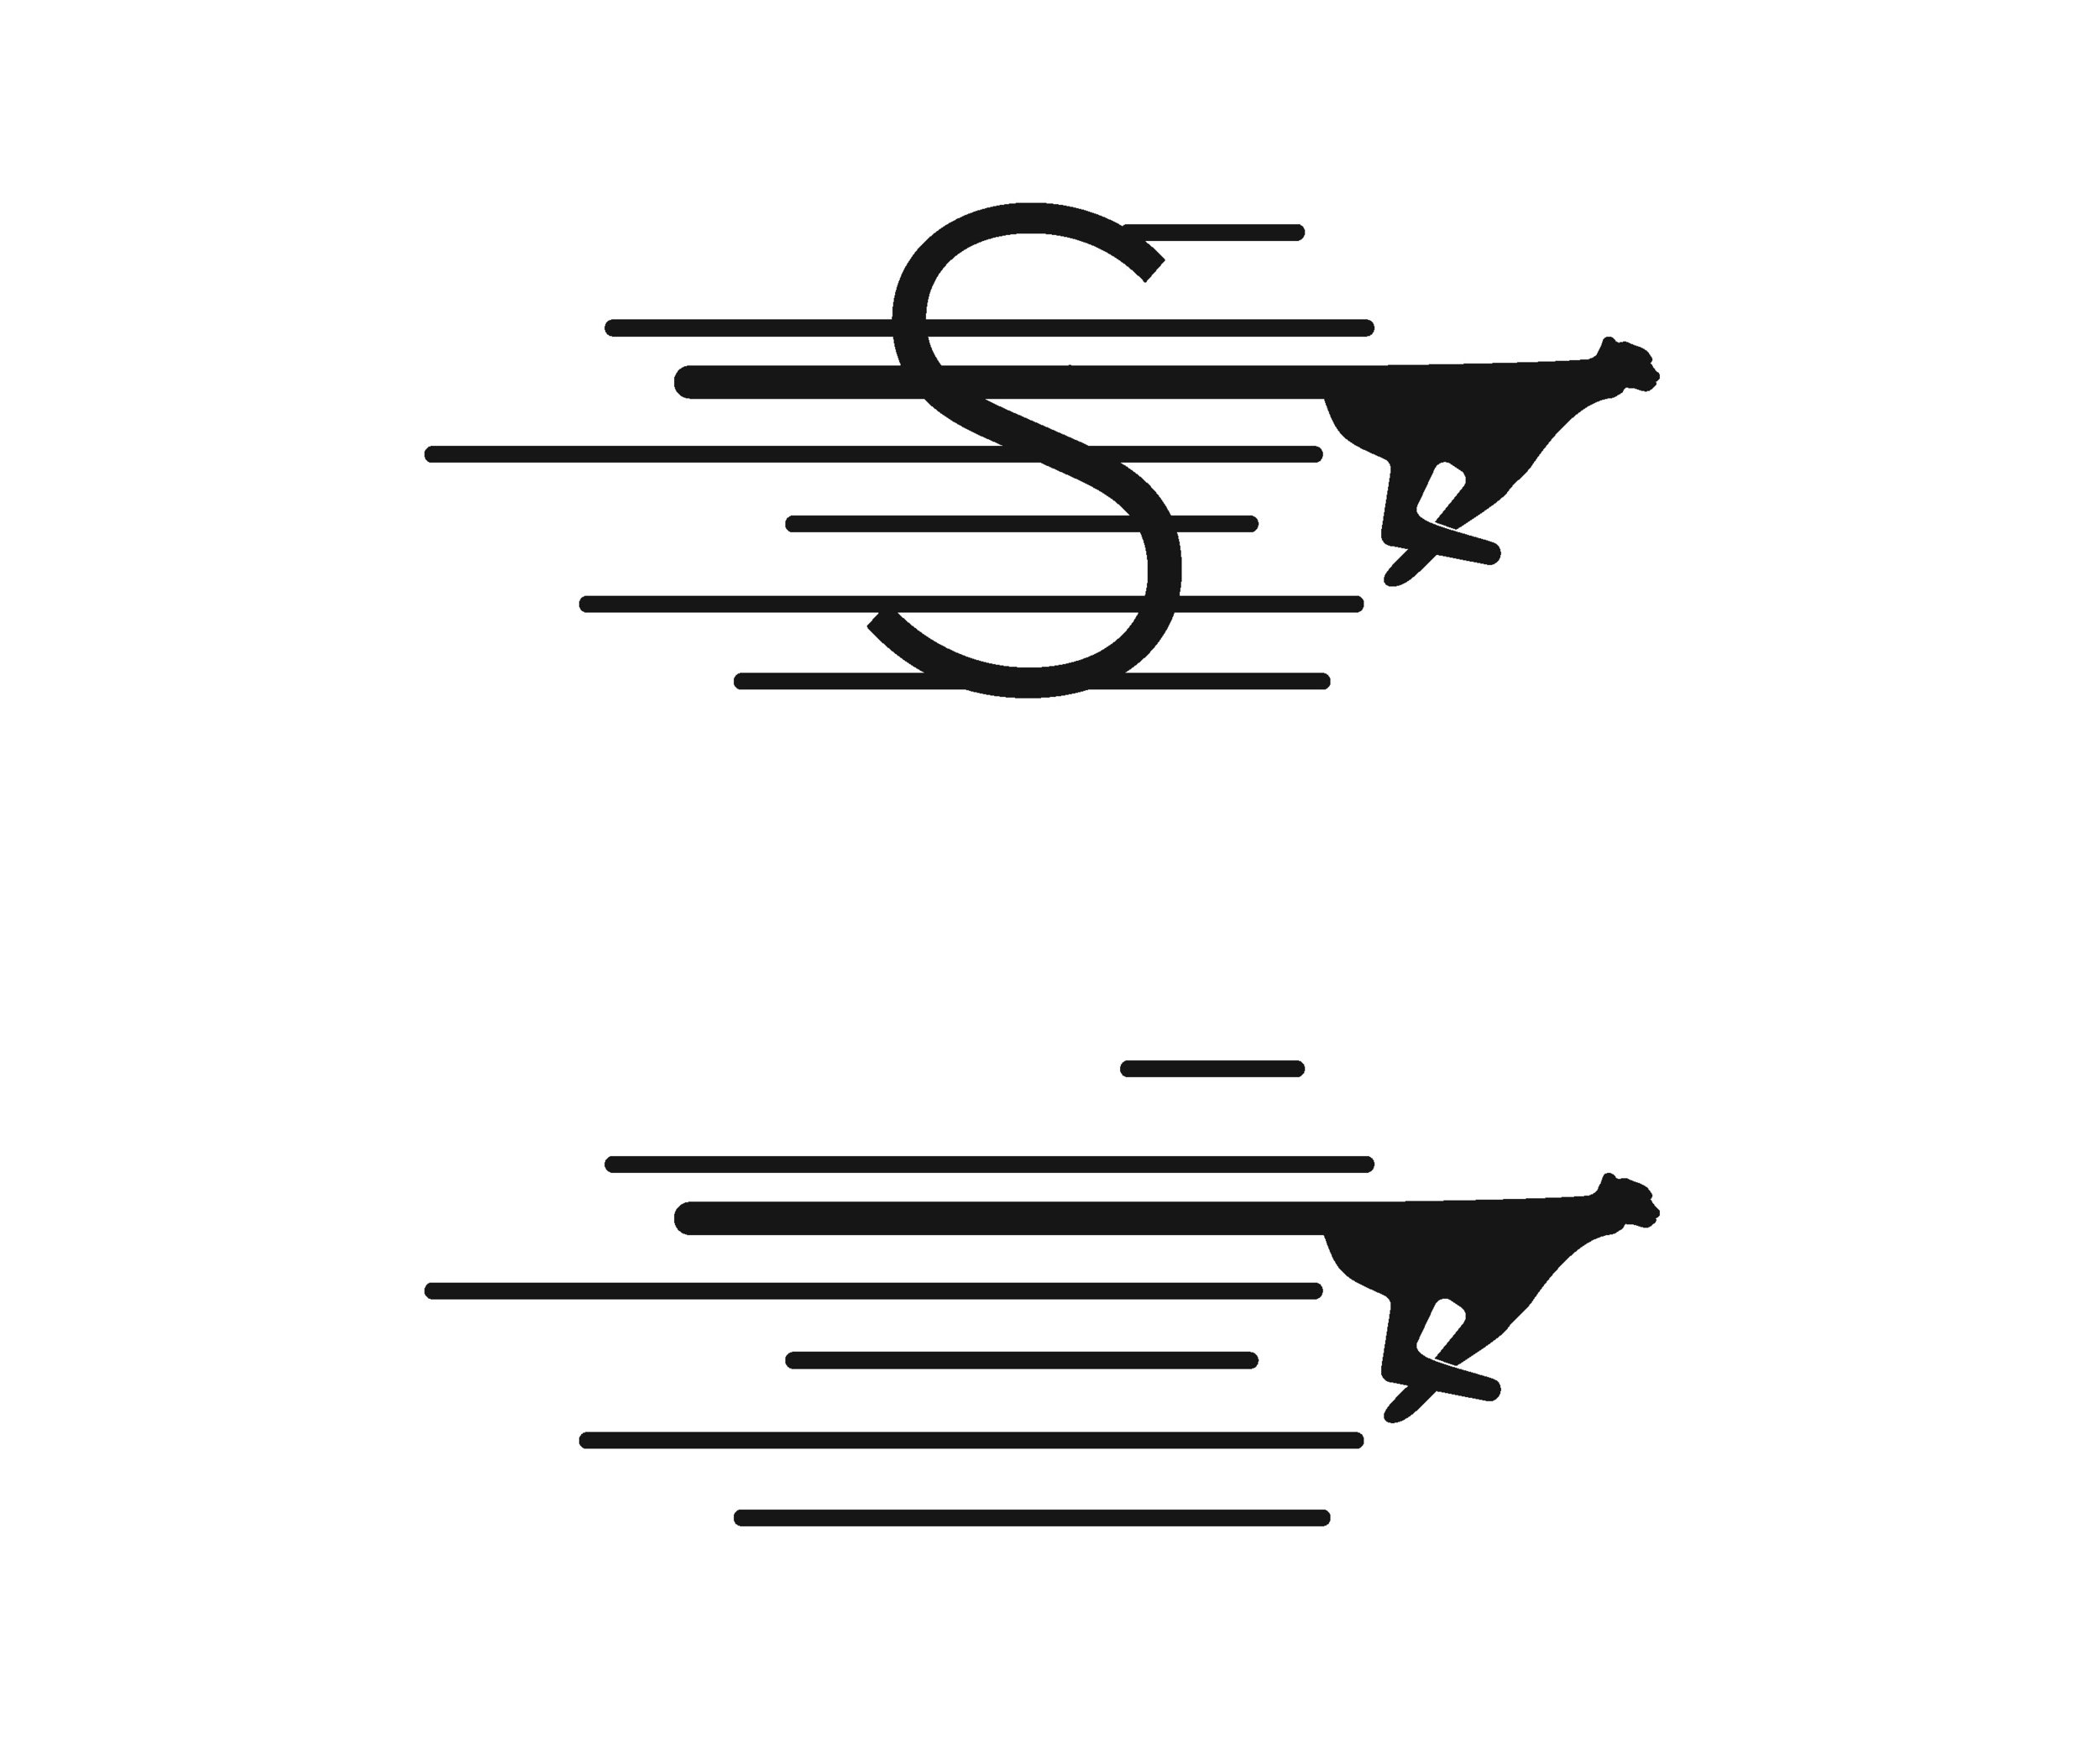 Stride Search identity logo concepts 2 cheetah lines